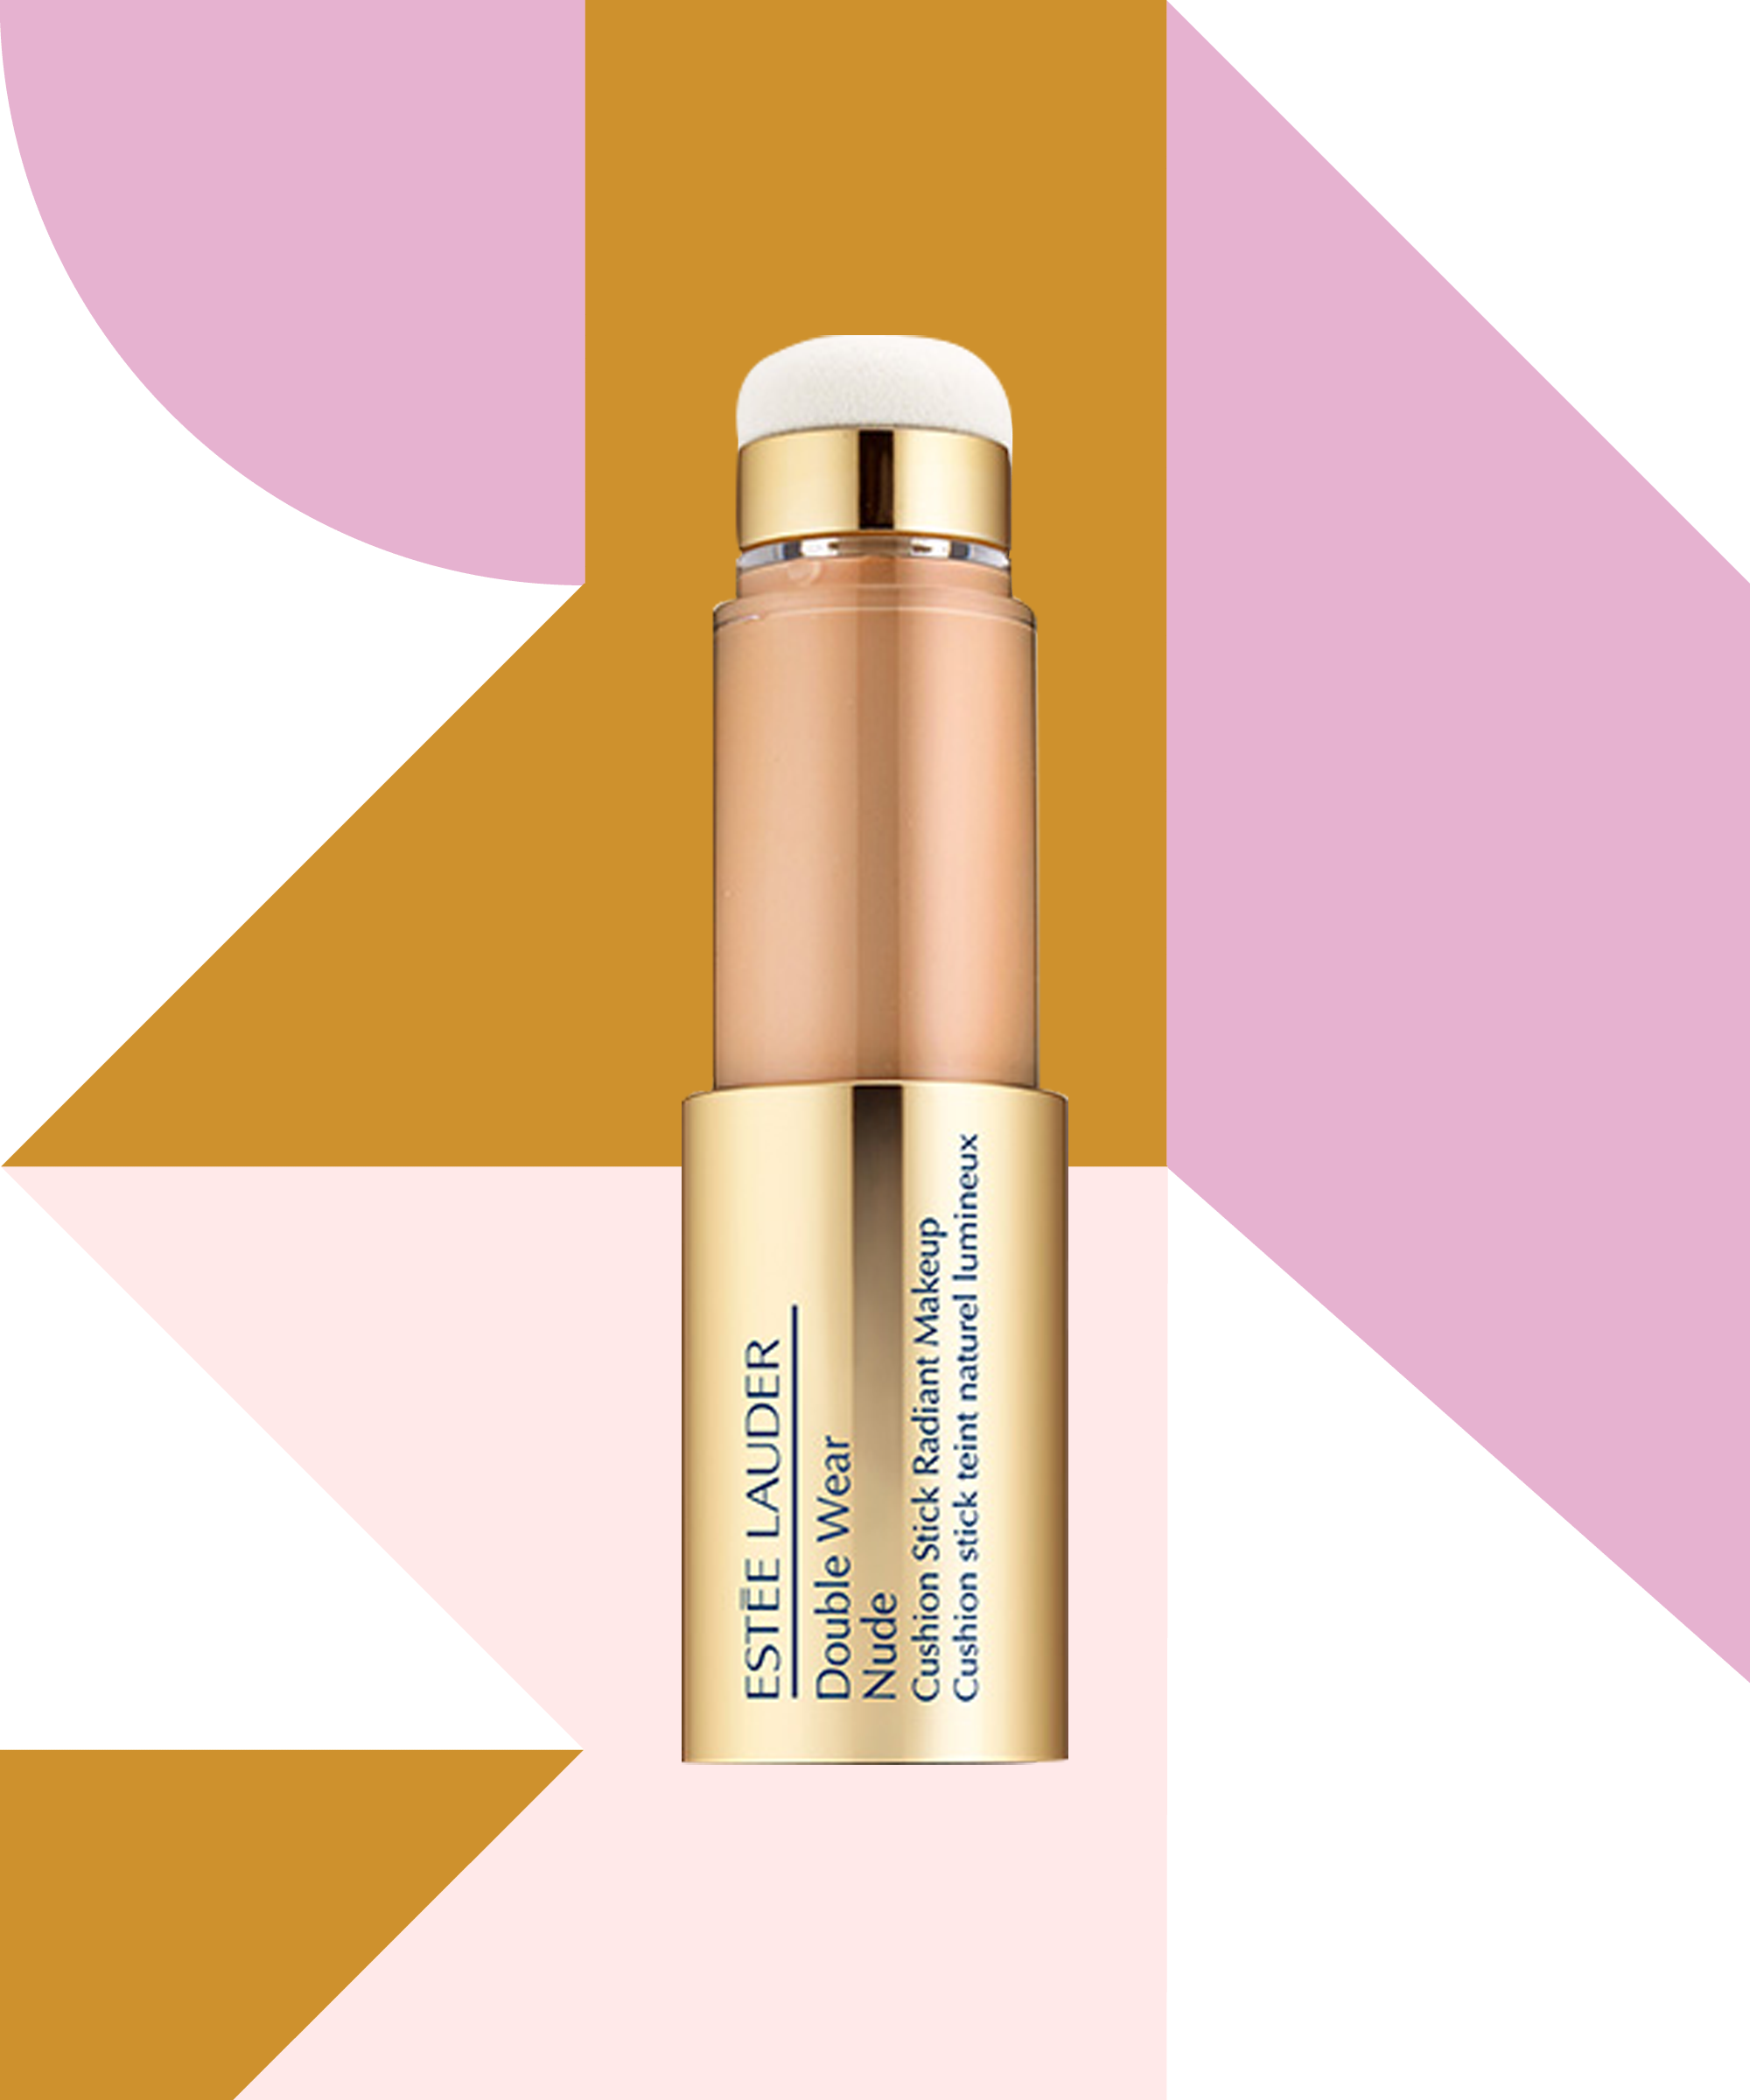 8 Of The Best Products For The No-Makeup Makeup Look